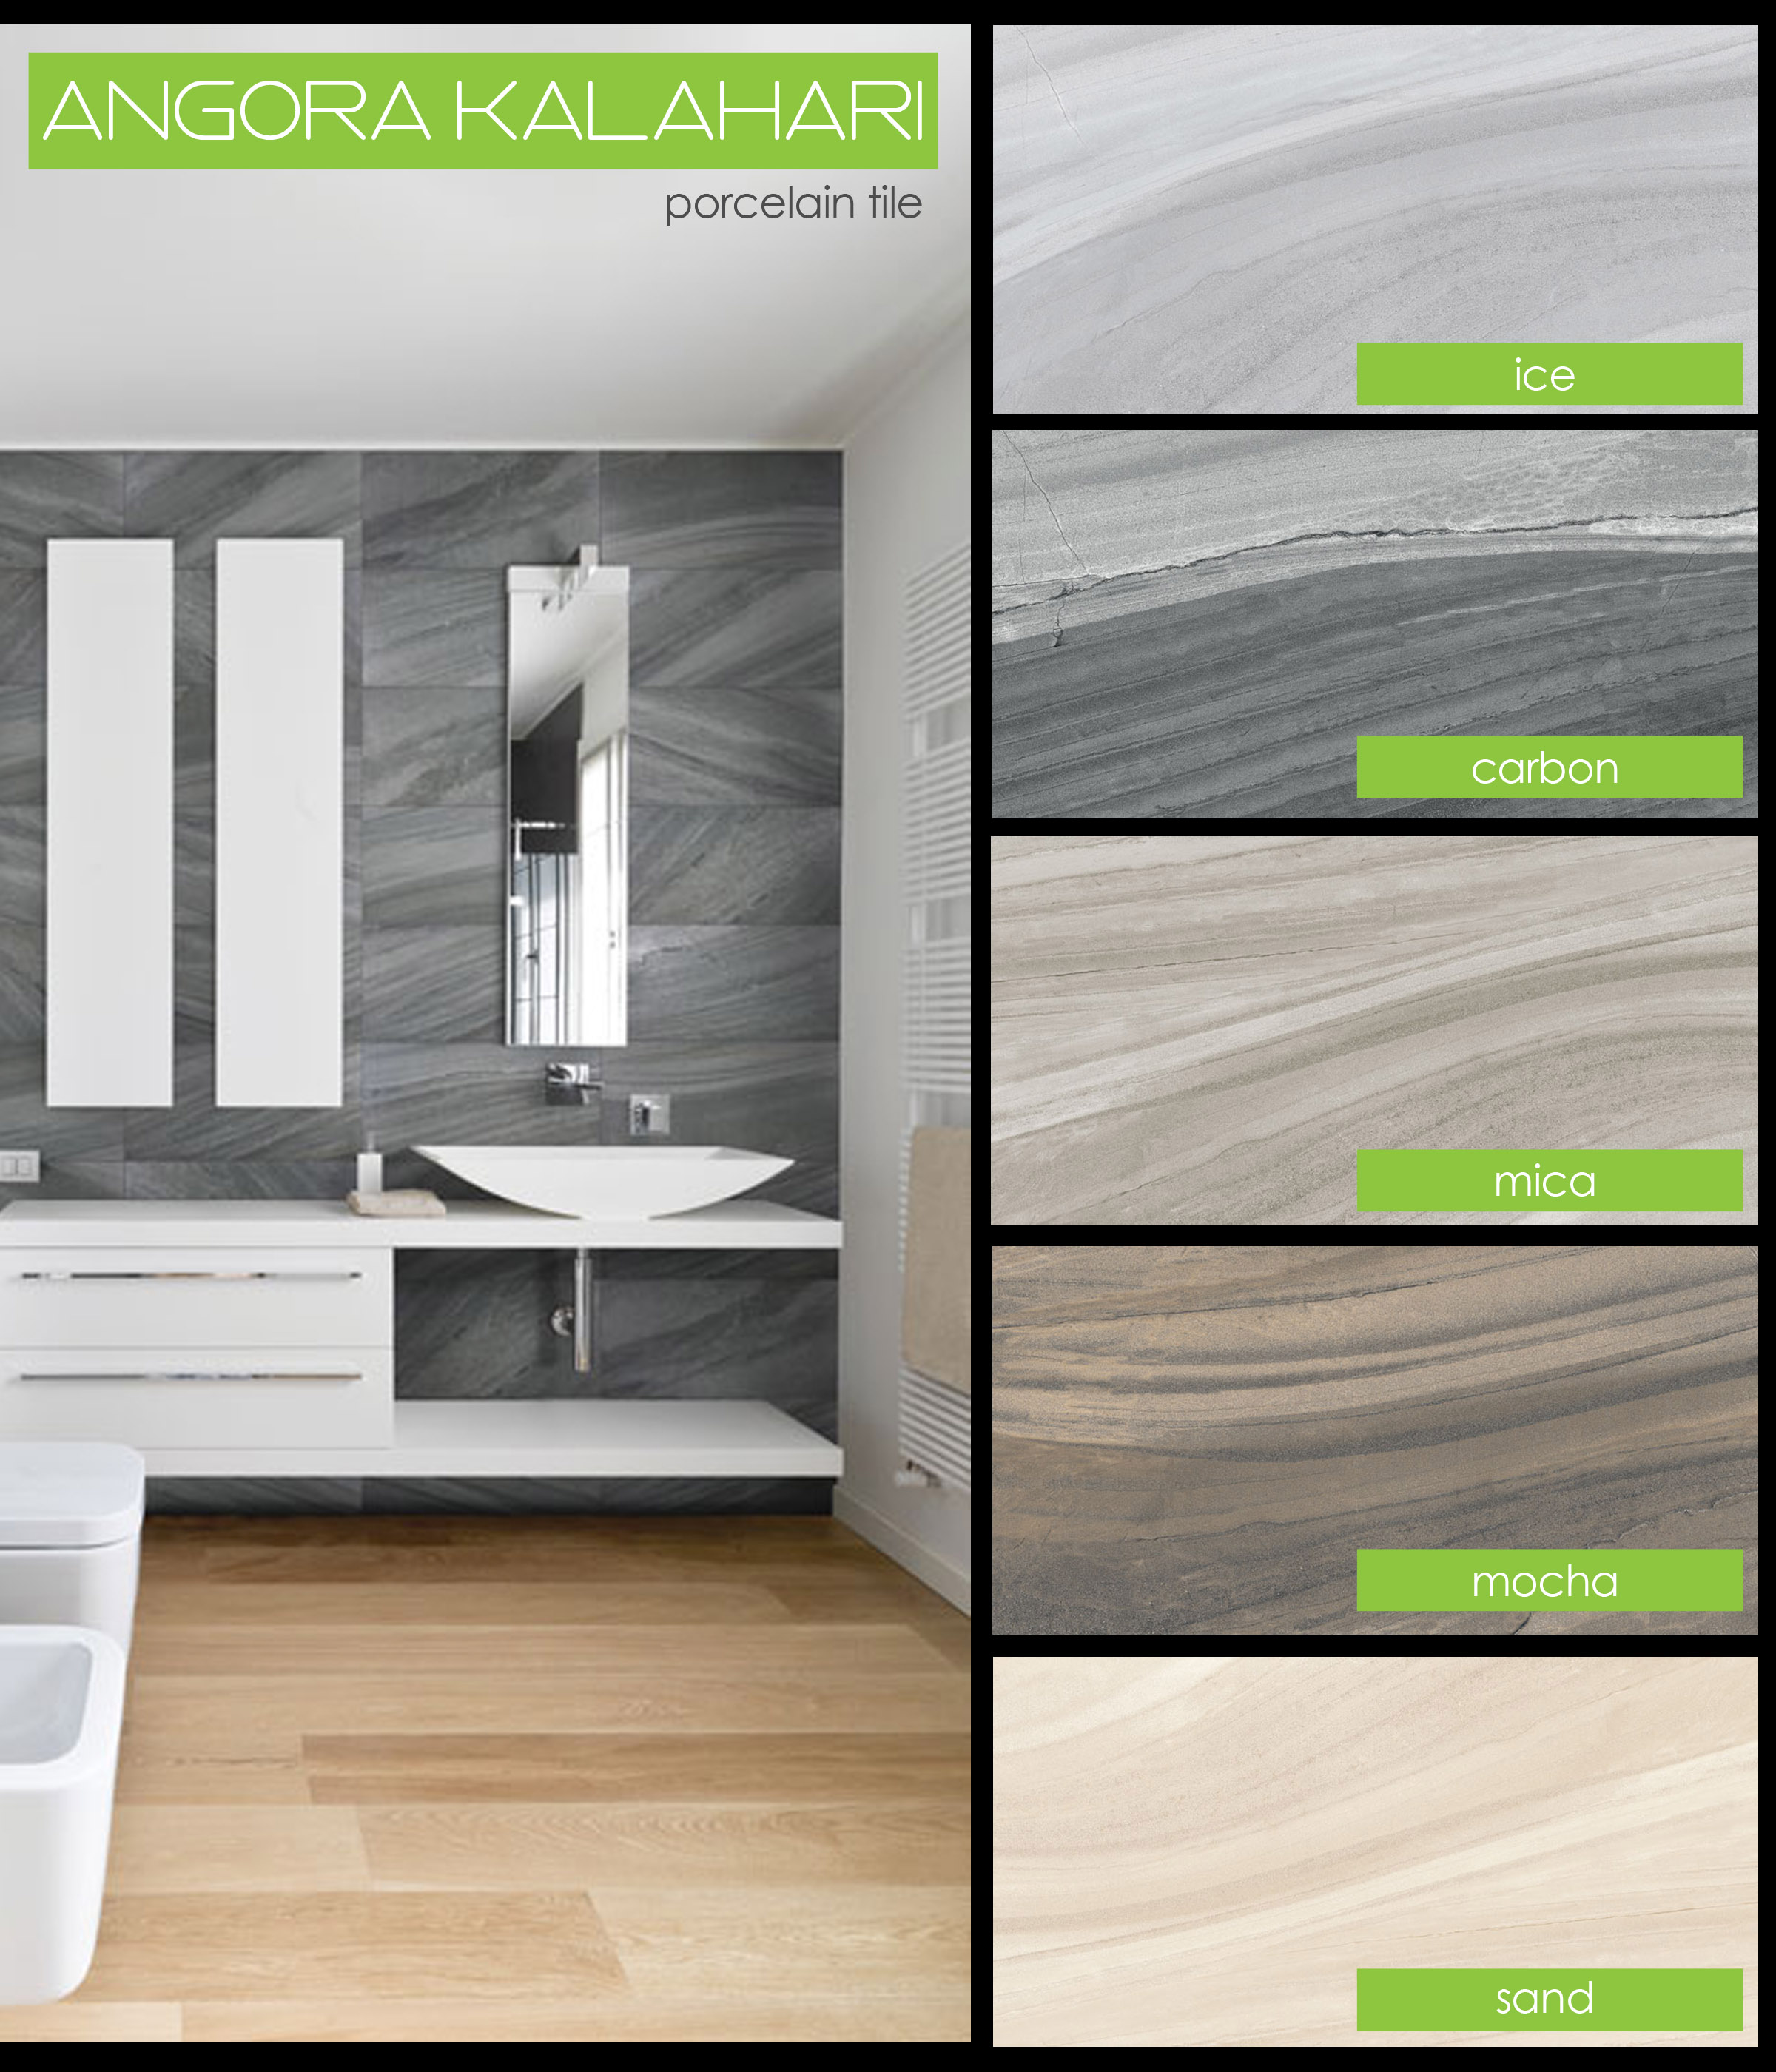 New arrivals for tile stone hardwood vinyl laminate carpet and tierra sol angora kalahari veining texture porcelain tile ice carbon mica mocha sand 12x24 bathroom contemporary dailygadgetfo Image collections